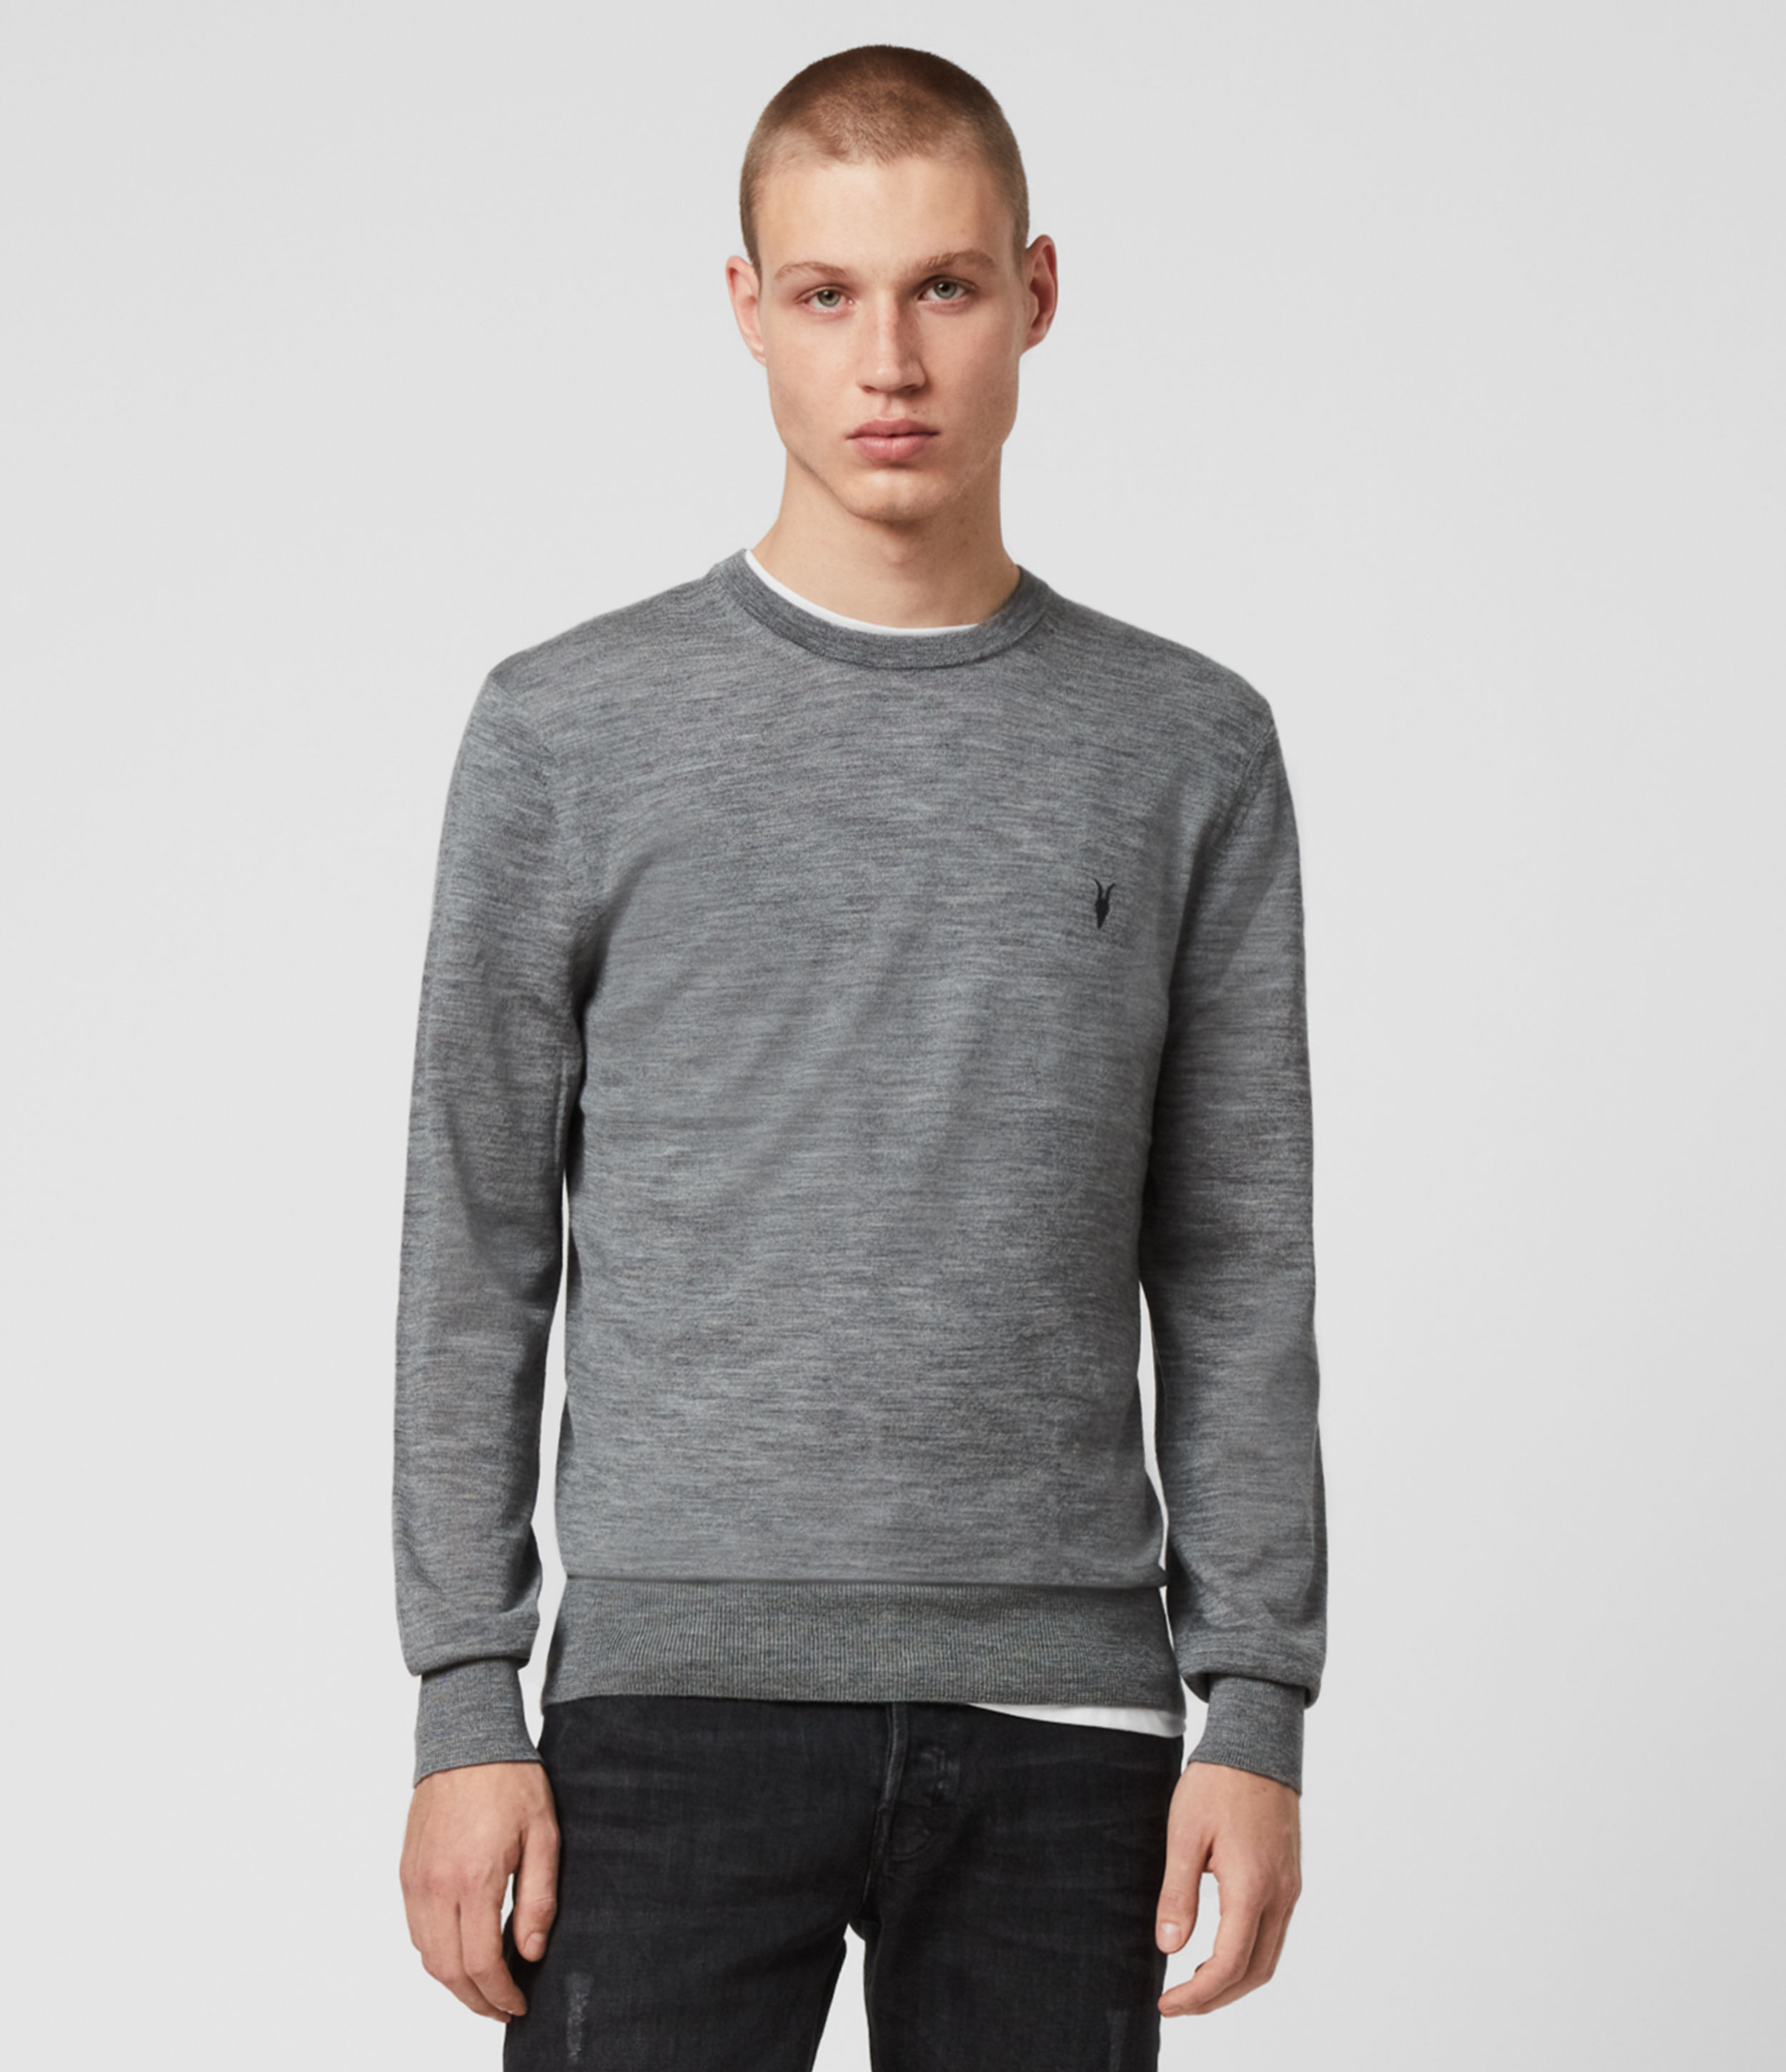 AllSaints Men's Lightweight Merino Wool Mode Crew Jumper, Grey, Size: XXL